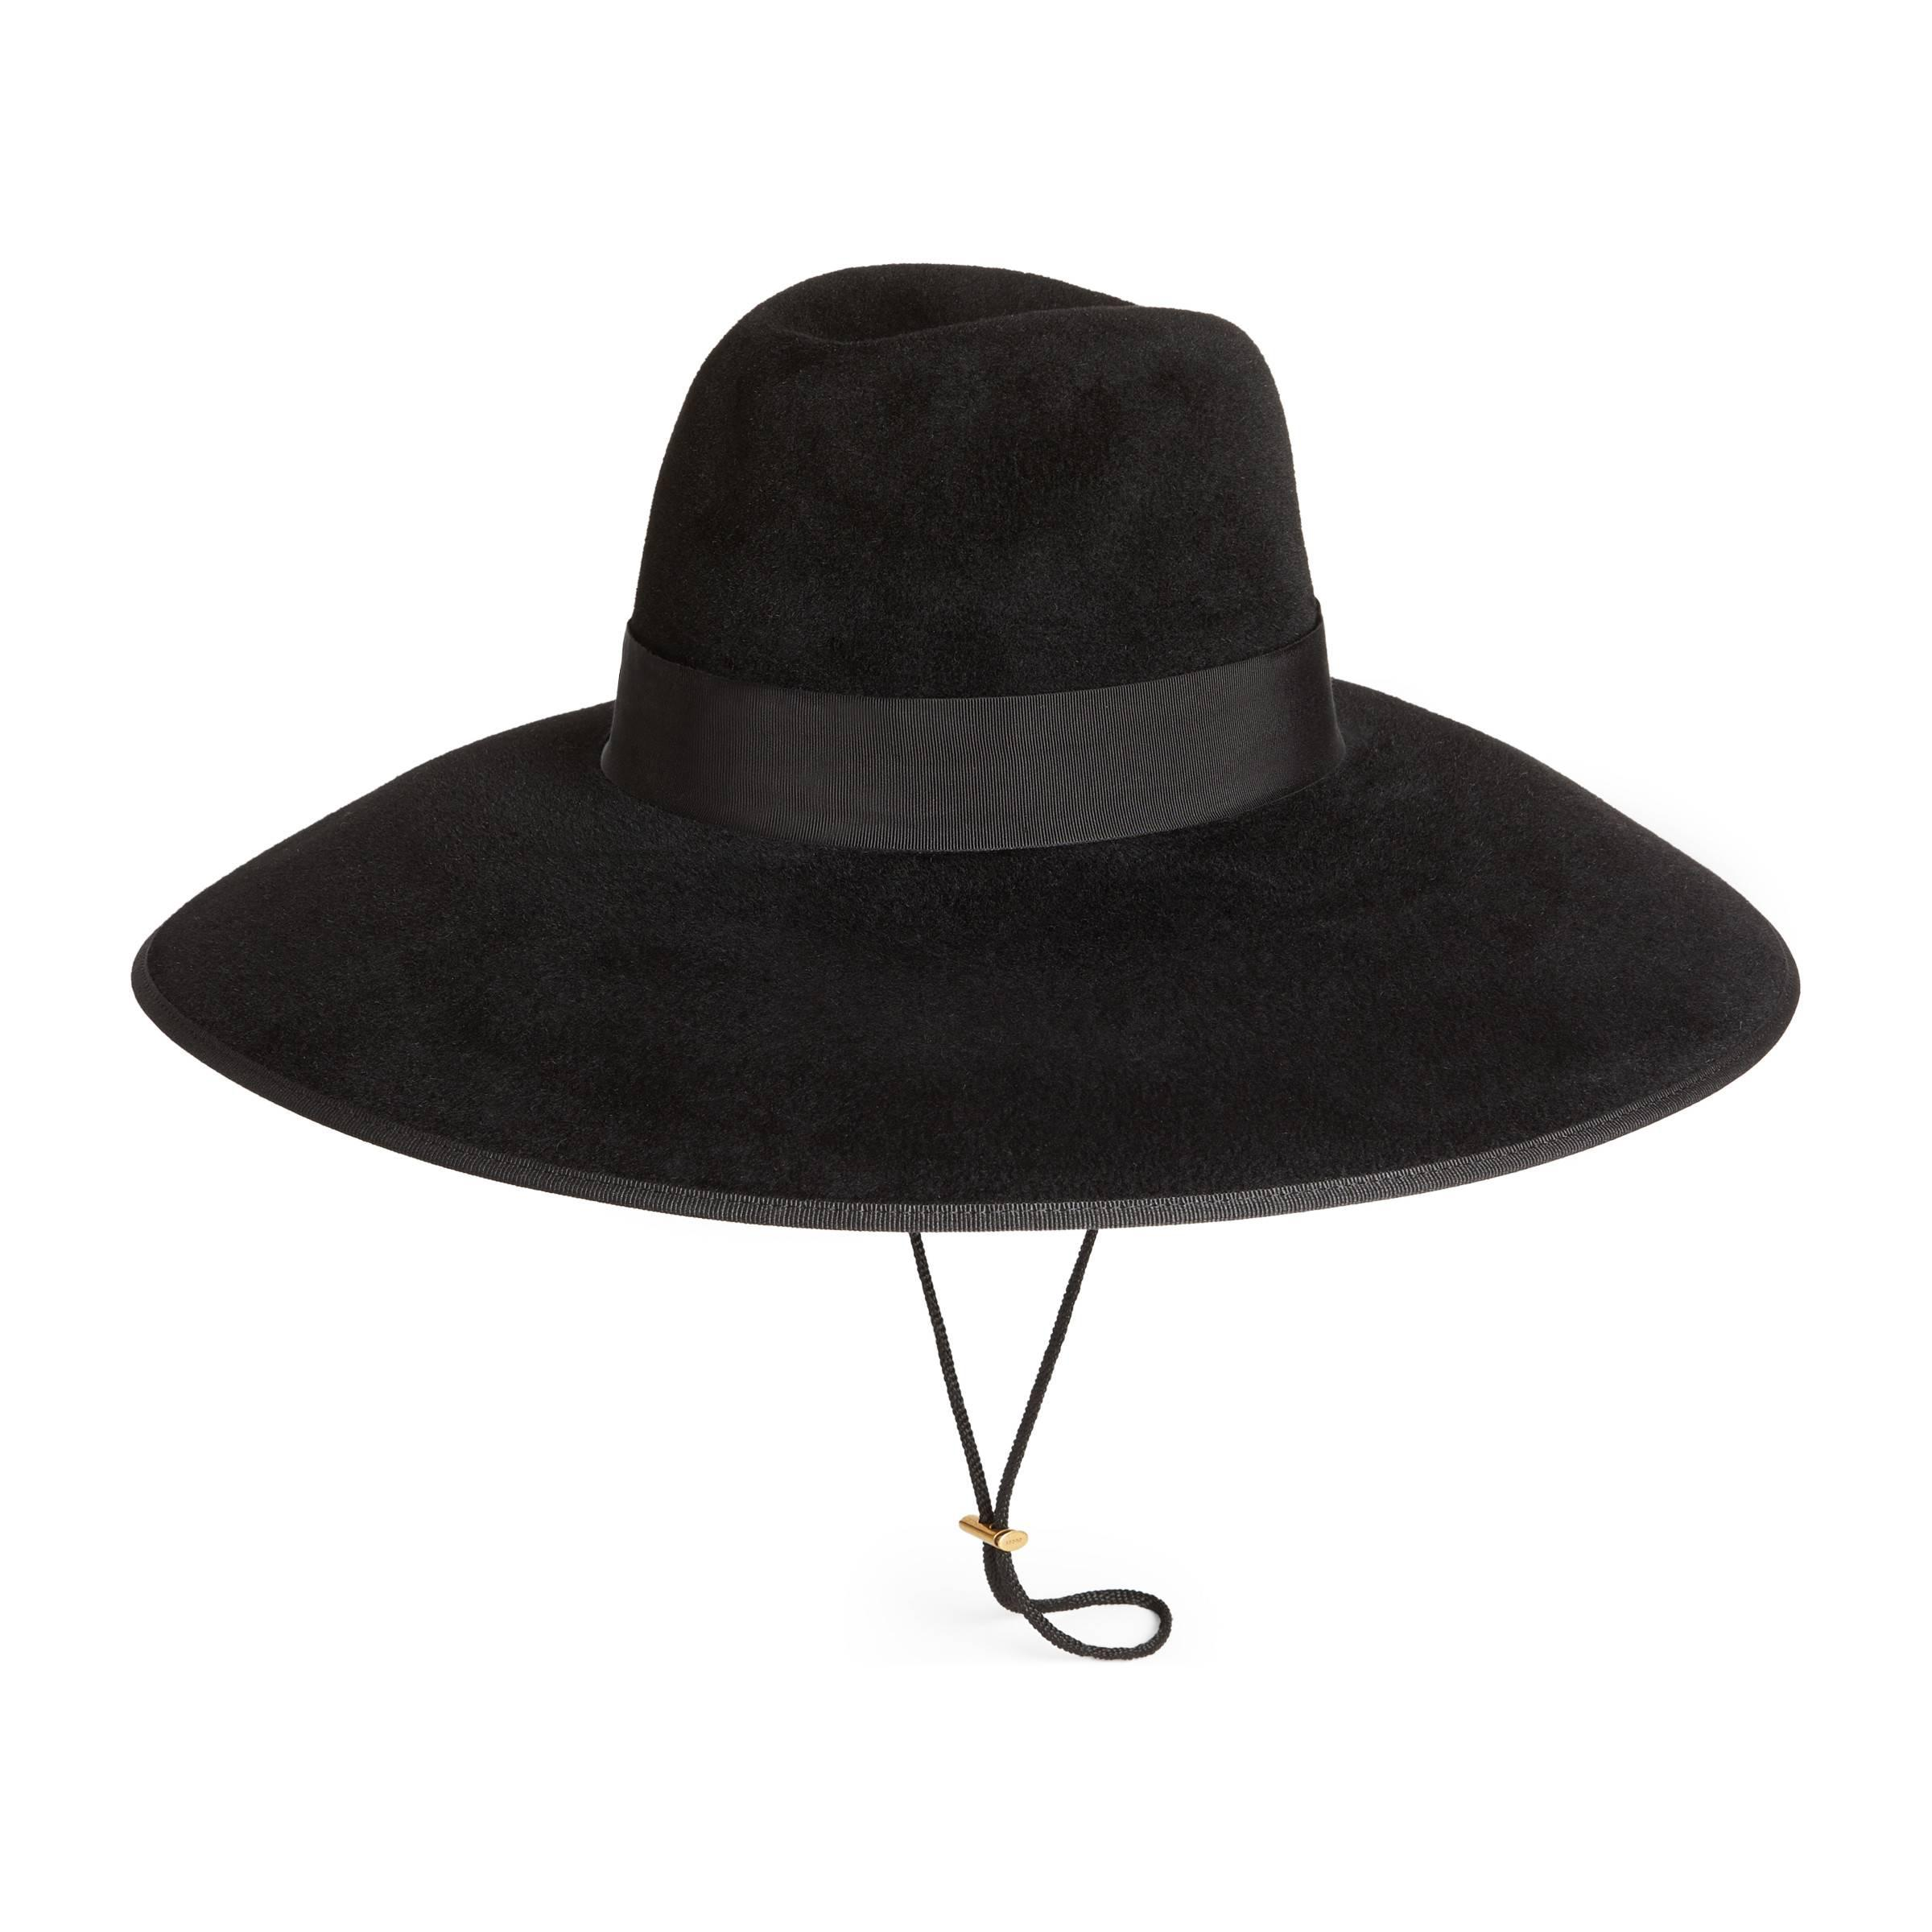 da681493e Gucci - Black Felt Wide Brim Hat for Men - Lyst. View fullscreen